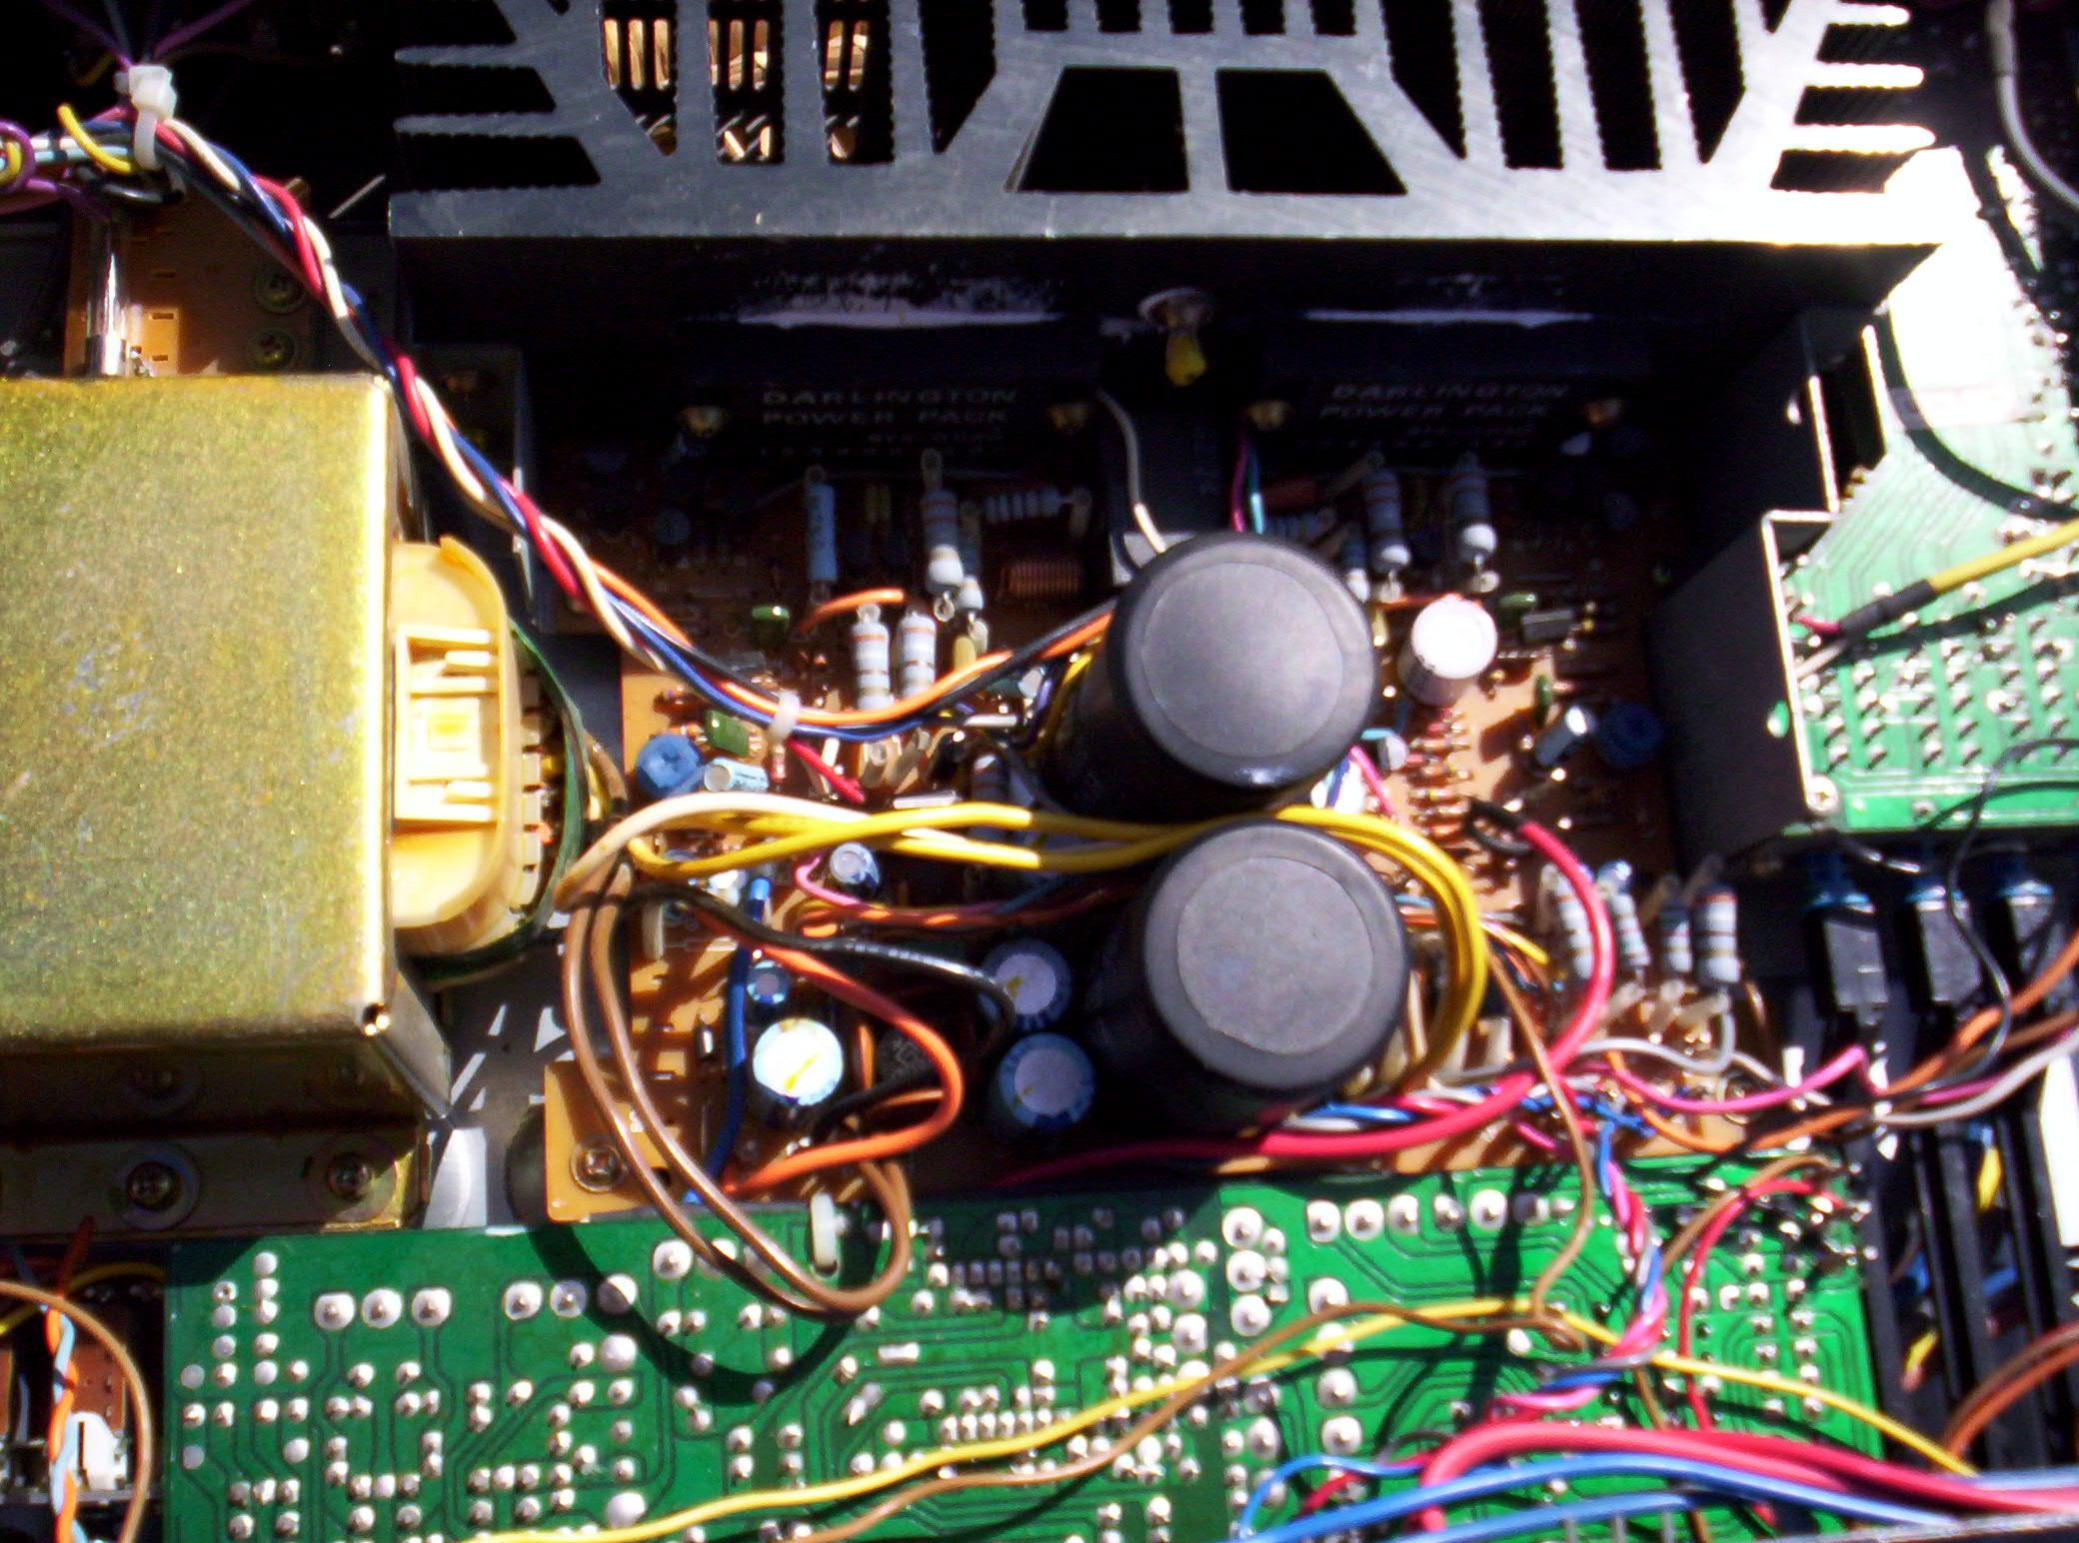 Sears Lawn Tractor Wiring Diagram Craftsman Riding Mower Electrical Diagram T likewise  further Sanyosca Usersmanual User Guide Page as well Three Phase Converter Wiring Diagram Single To also Dacpcm. on sanyo fuse diagram